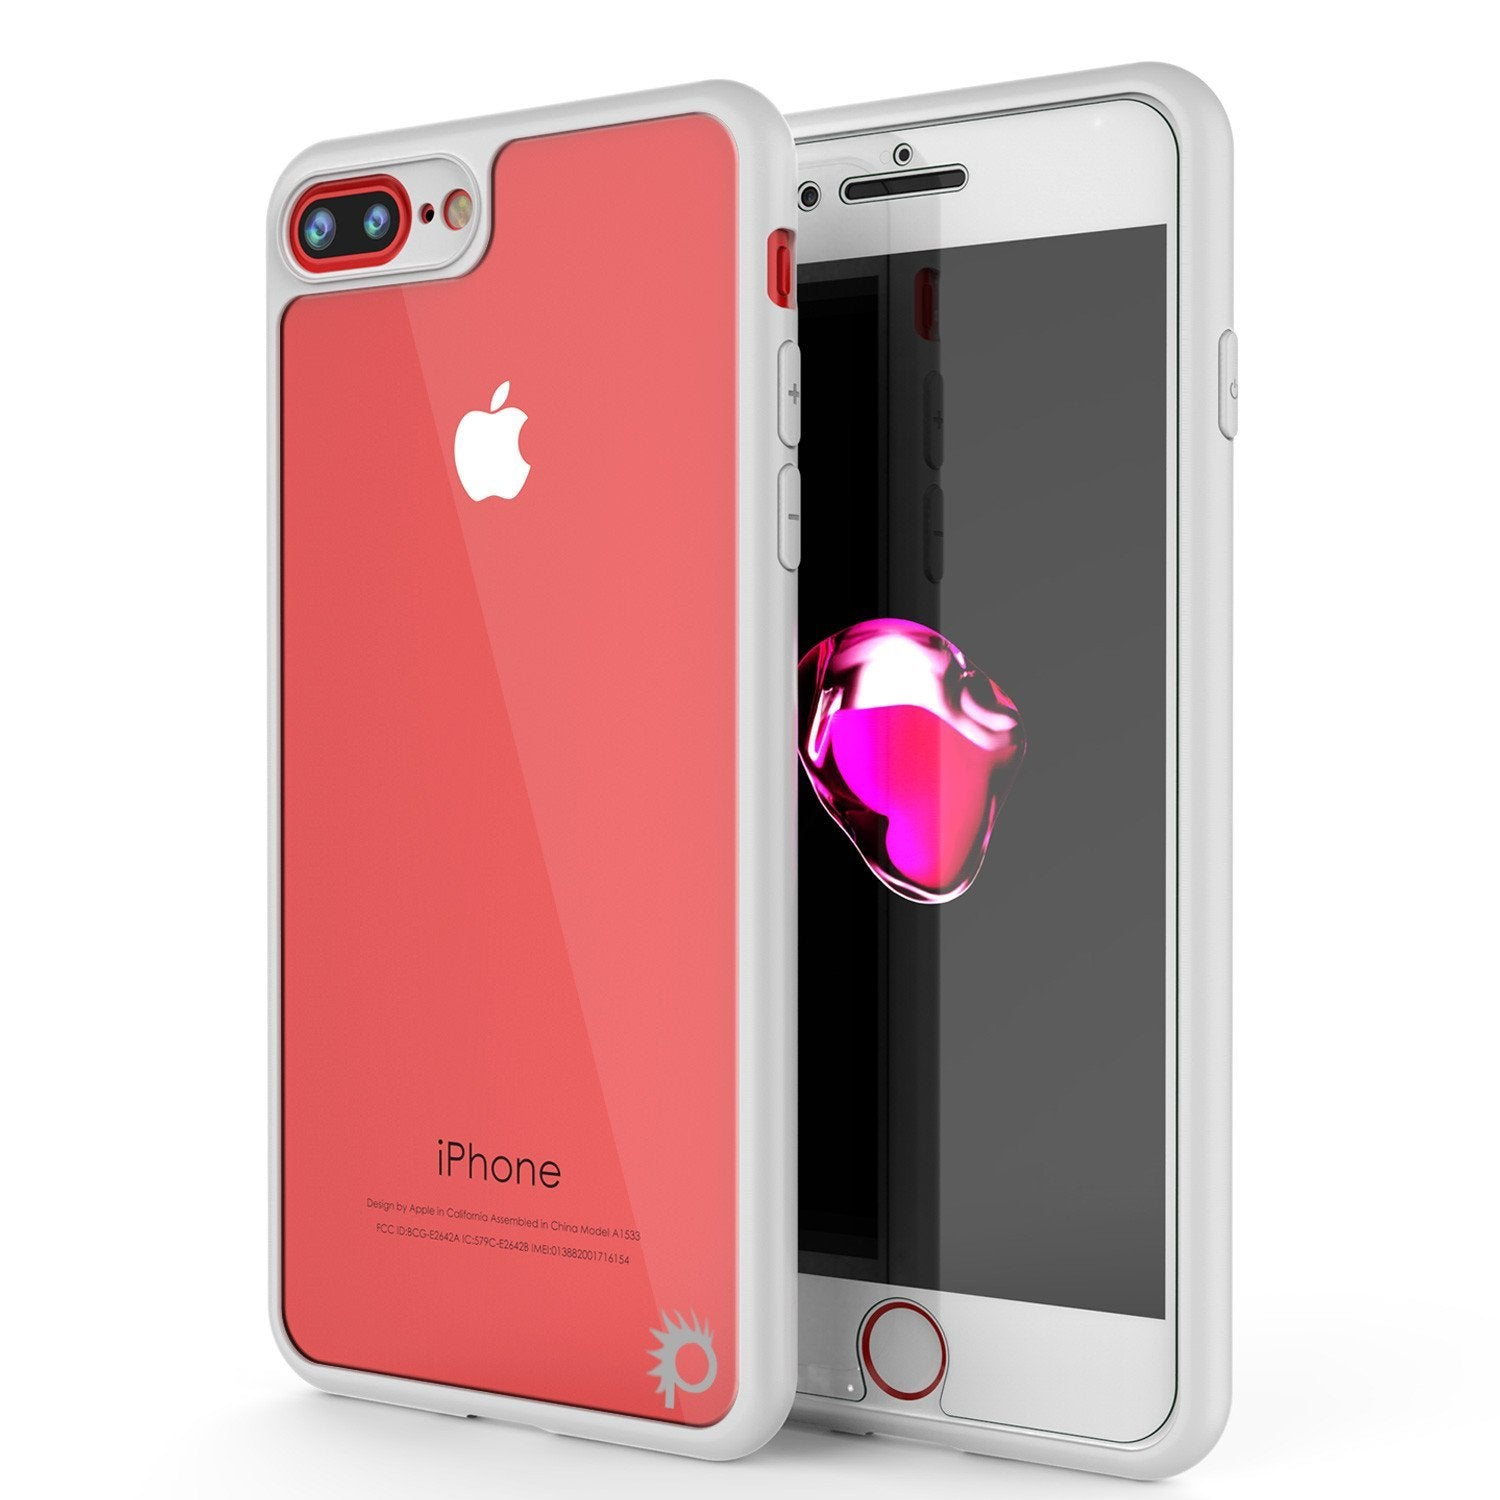 iPhone 8+ Plus Case, Punkcase [MASK Series] [WHITE] Full Body Hybrid Dual Layer TPU Cover W/ protective Tempered Glass Screen Protector - PunkCase NZ